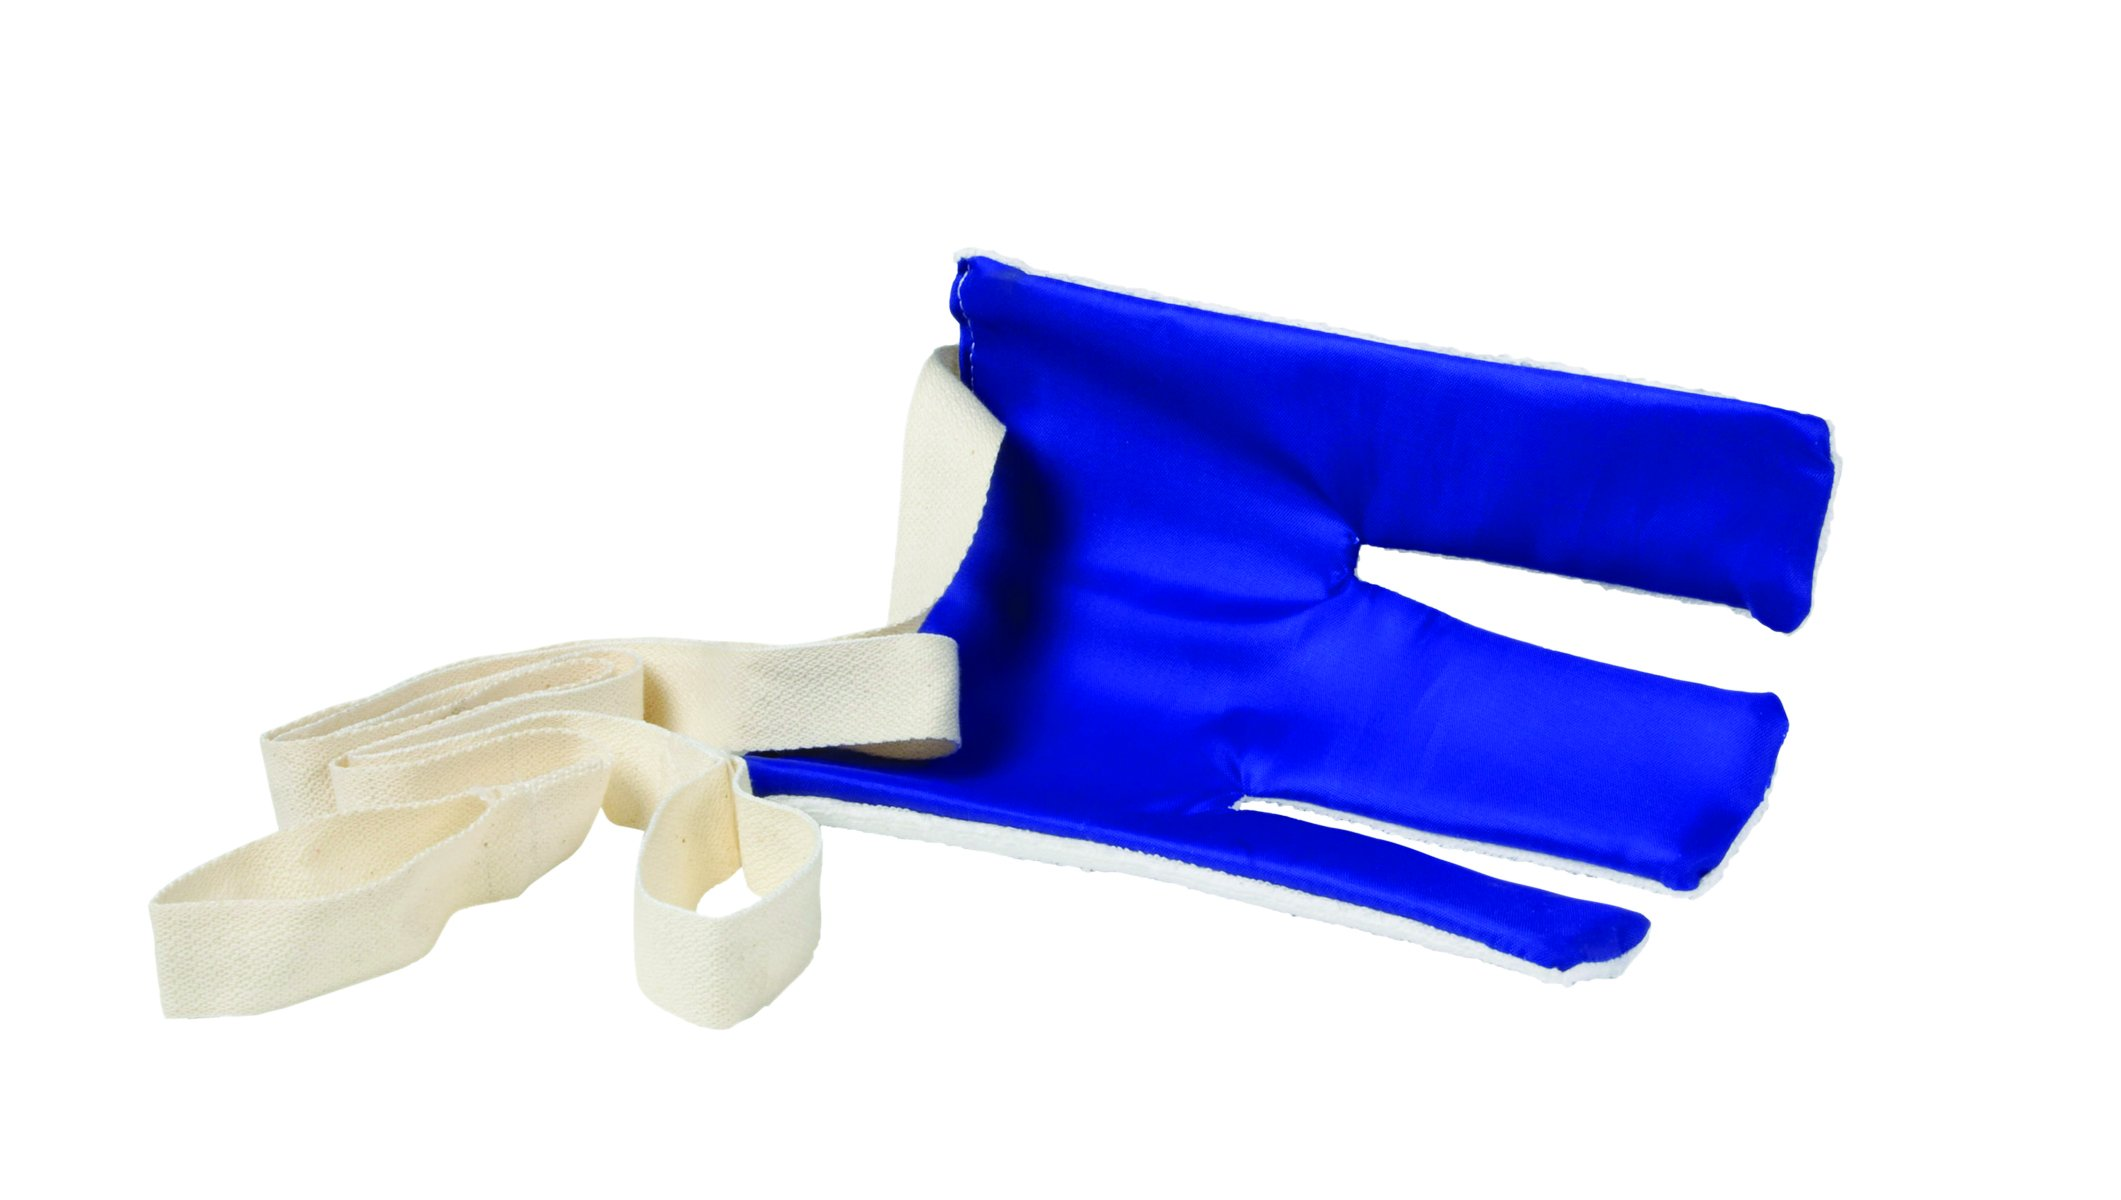 FabLife 86-0002 Flexible Sock Aid, Two Handles by FabLife